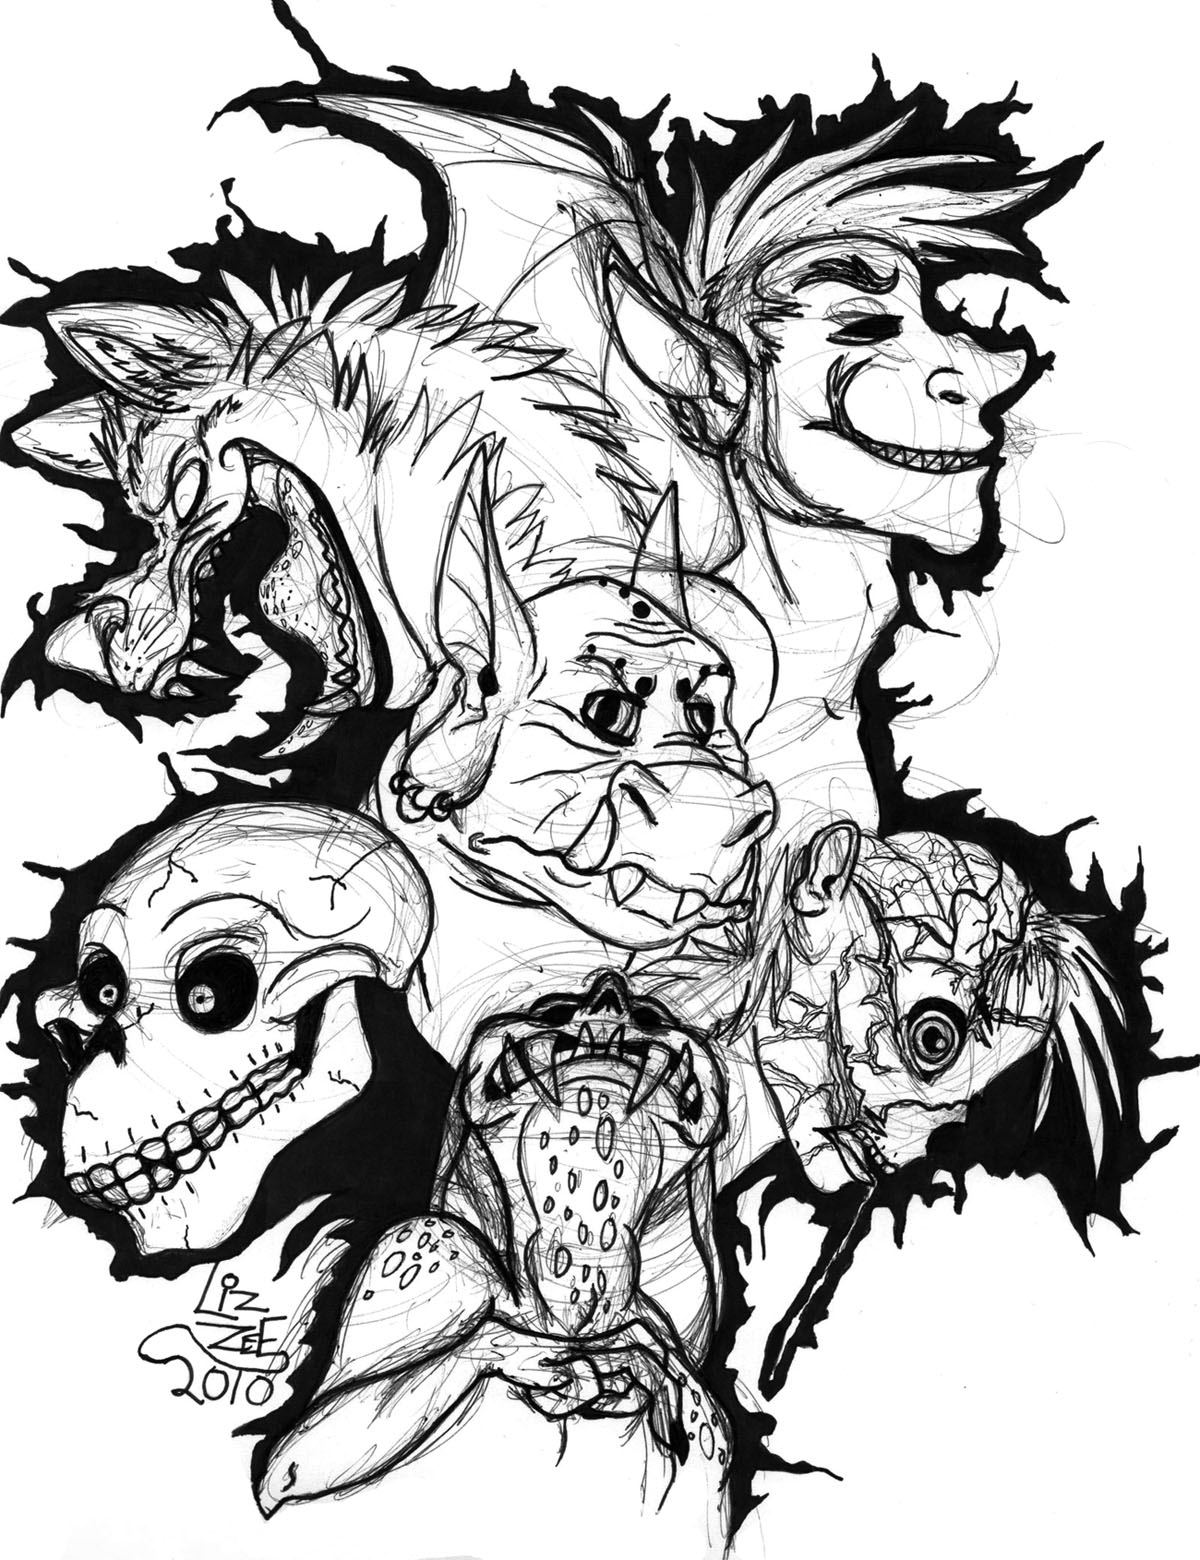 Spooky Drawing At Getdrawings Com Free For Personal Use Spooky